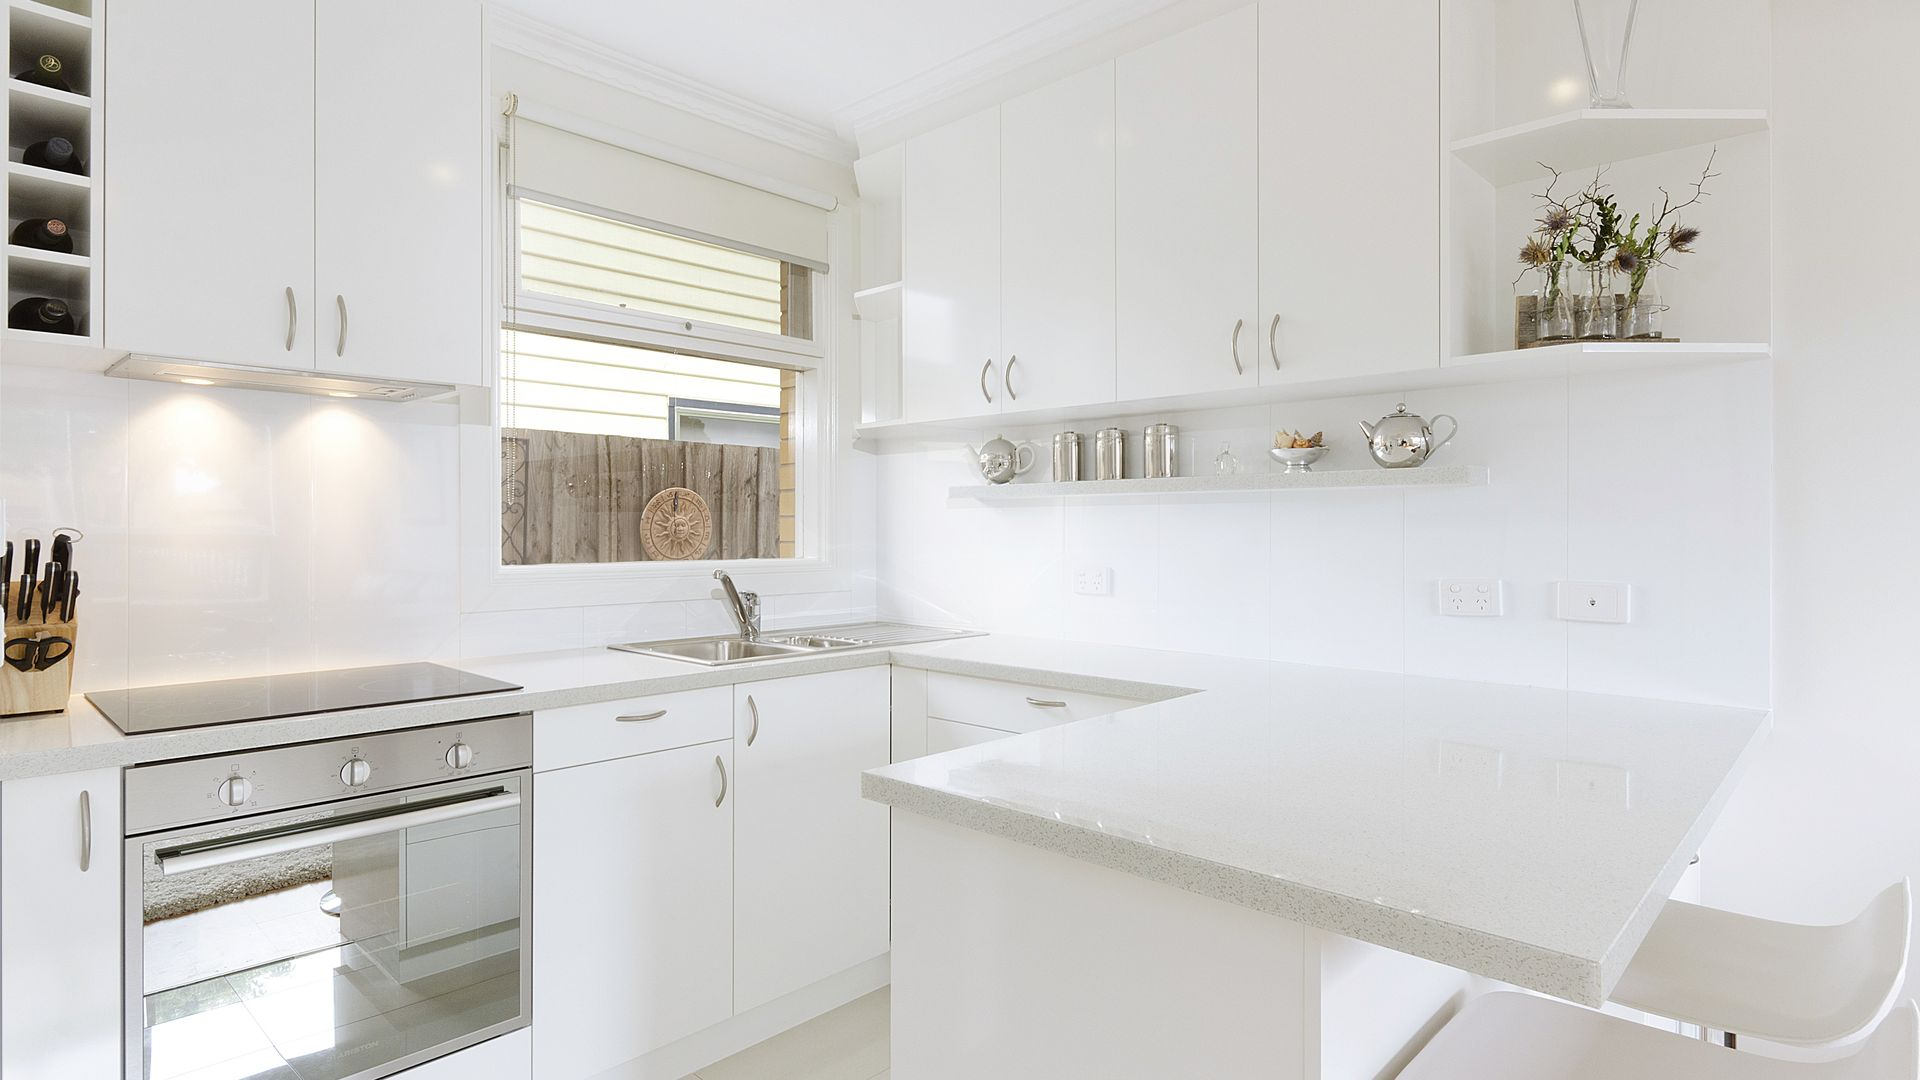 1/2 Martin Street, East Geelong VIC 3219, Image 2